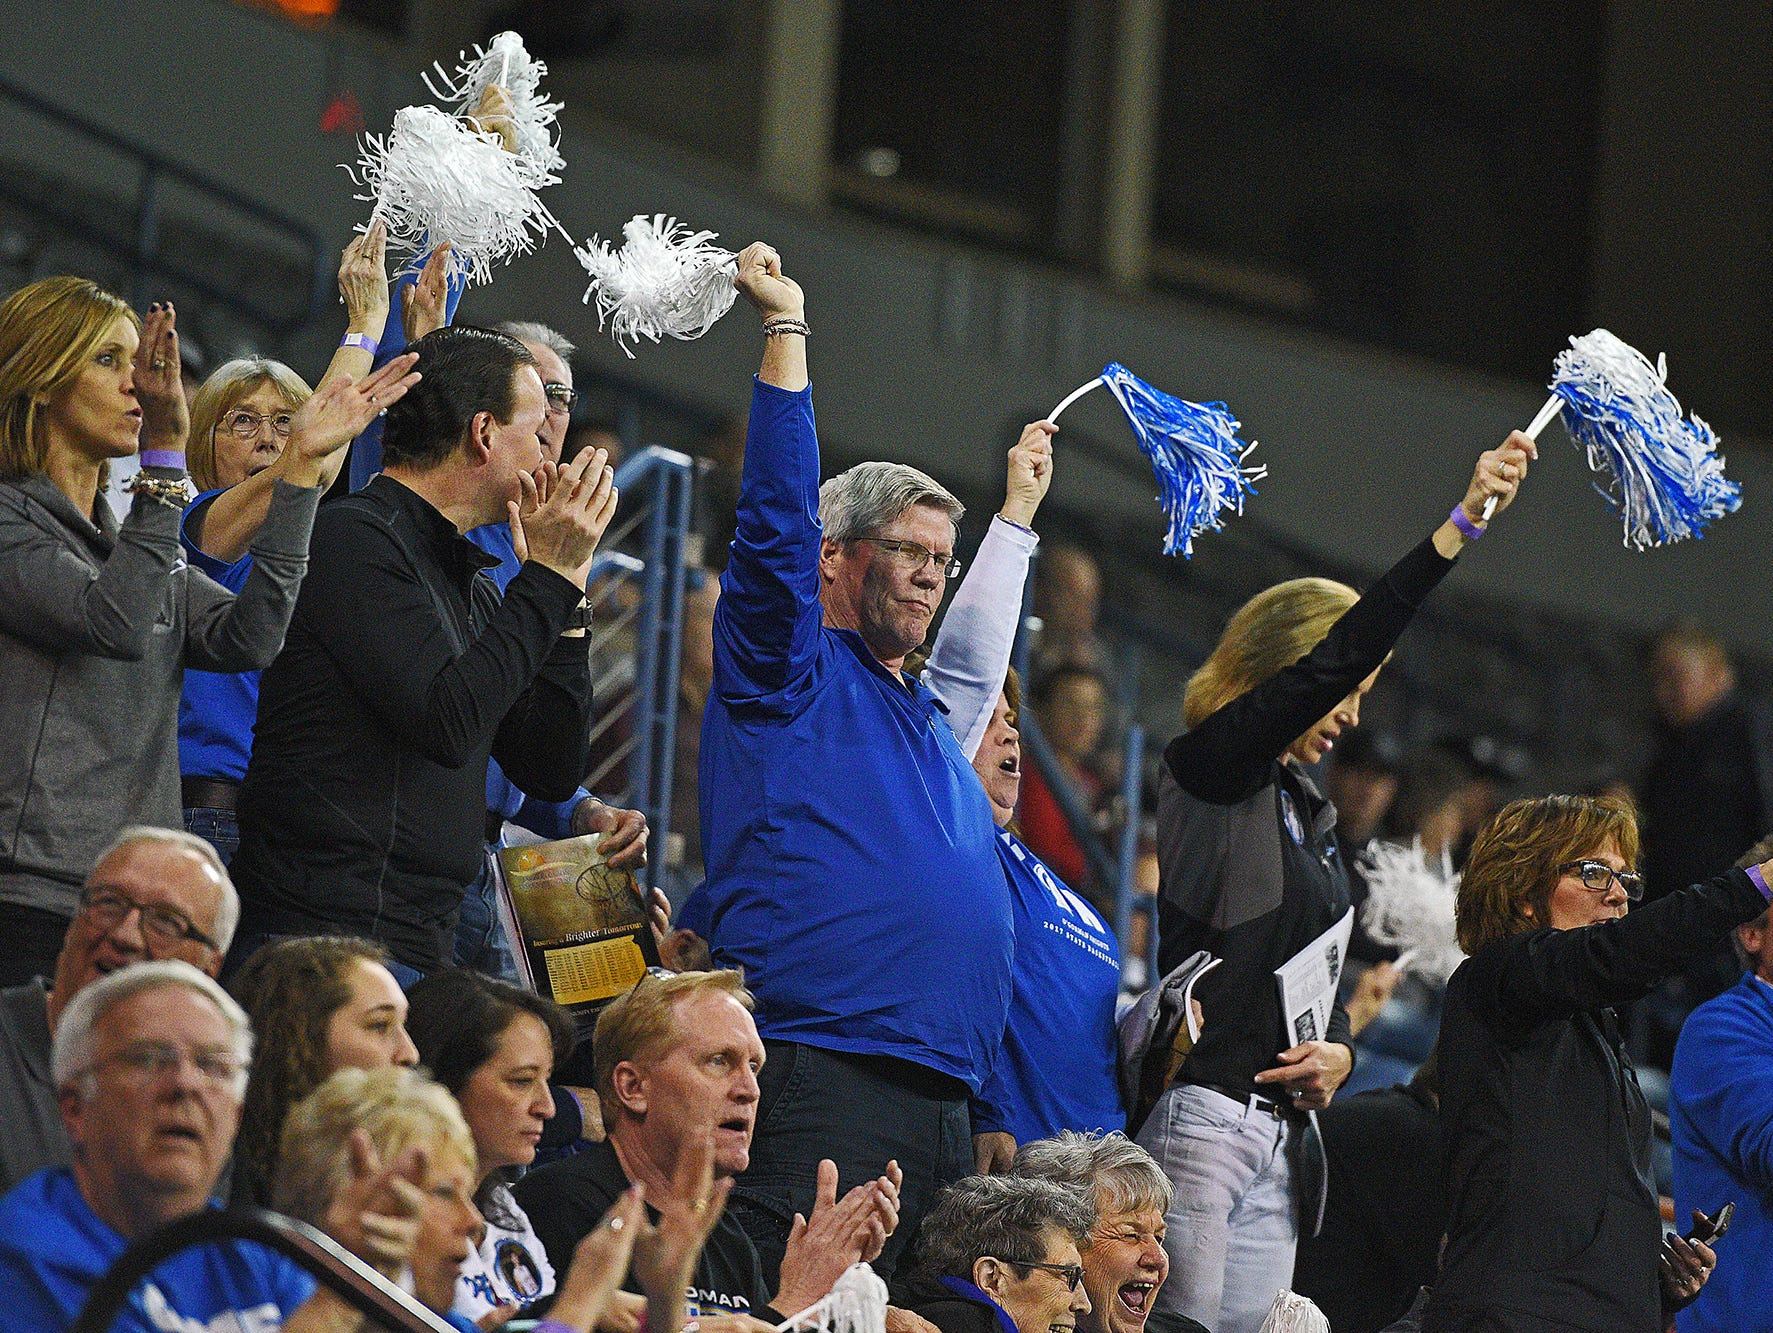 O'Gorman fans cheer on their team during a 2017 SDHSAA Class AA State Girls Basketball quarterfinal game against Roosevelt Thursday, March 16, 2017, at Rushmore Plaza Civic Center in Rapid City. O'Gorman beat Roosevelt 37-33.